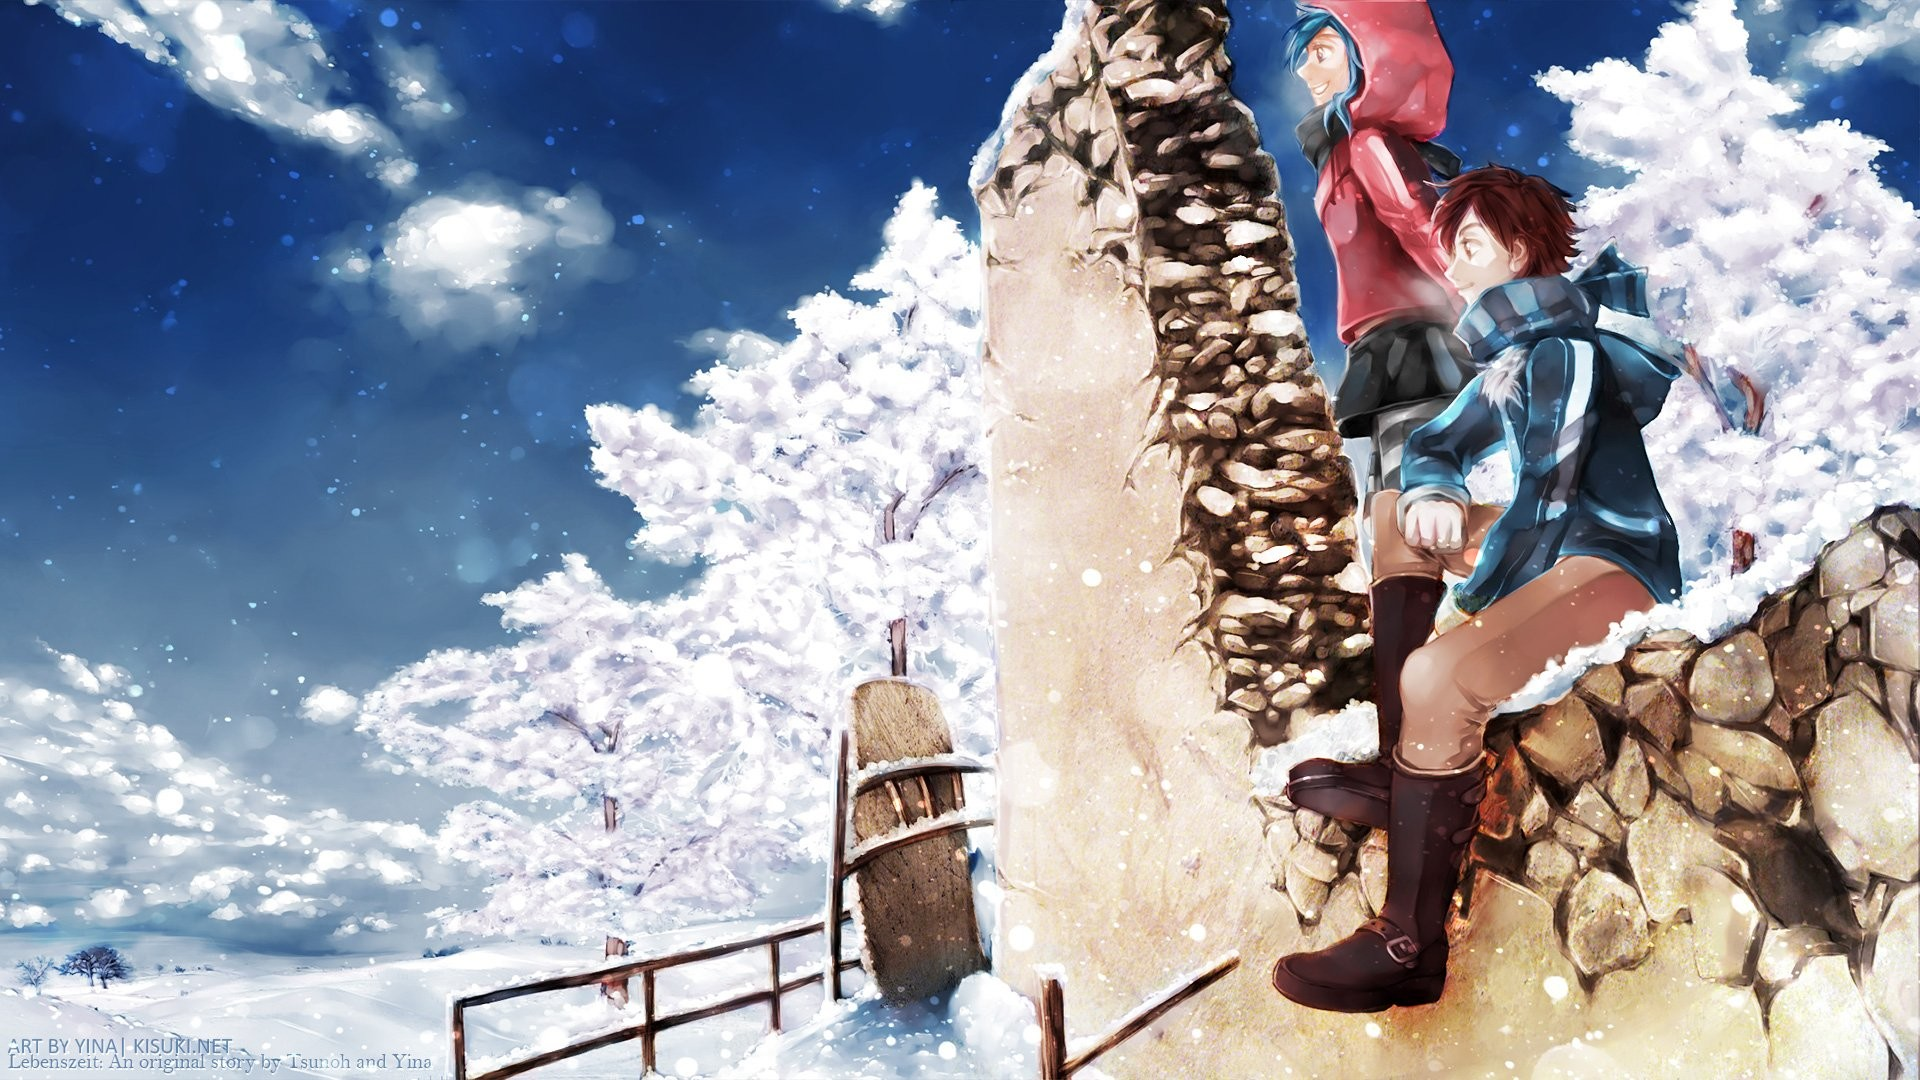 Winter anime wallpapers 70 background pictures - Winter anime girl wallpaper ...